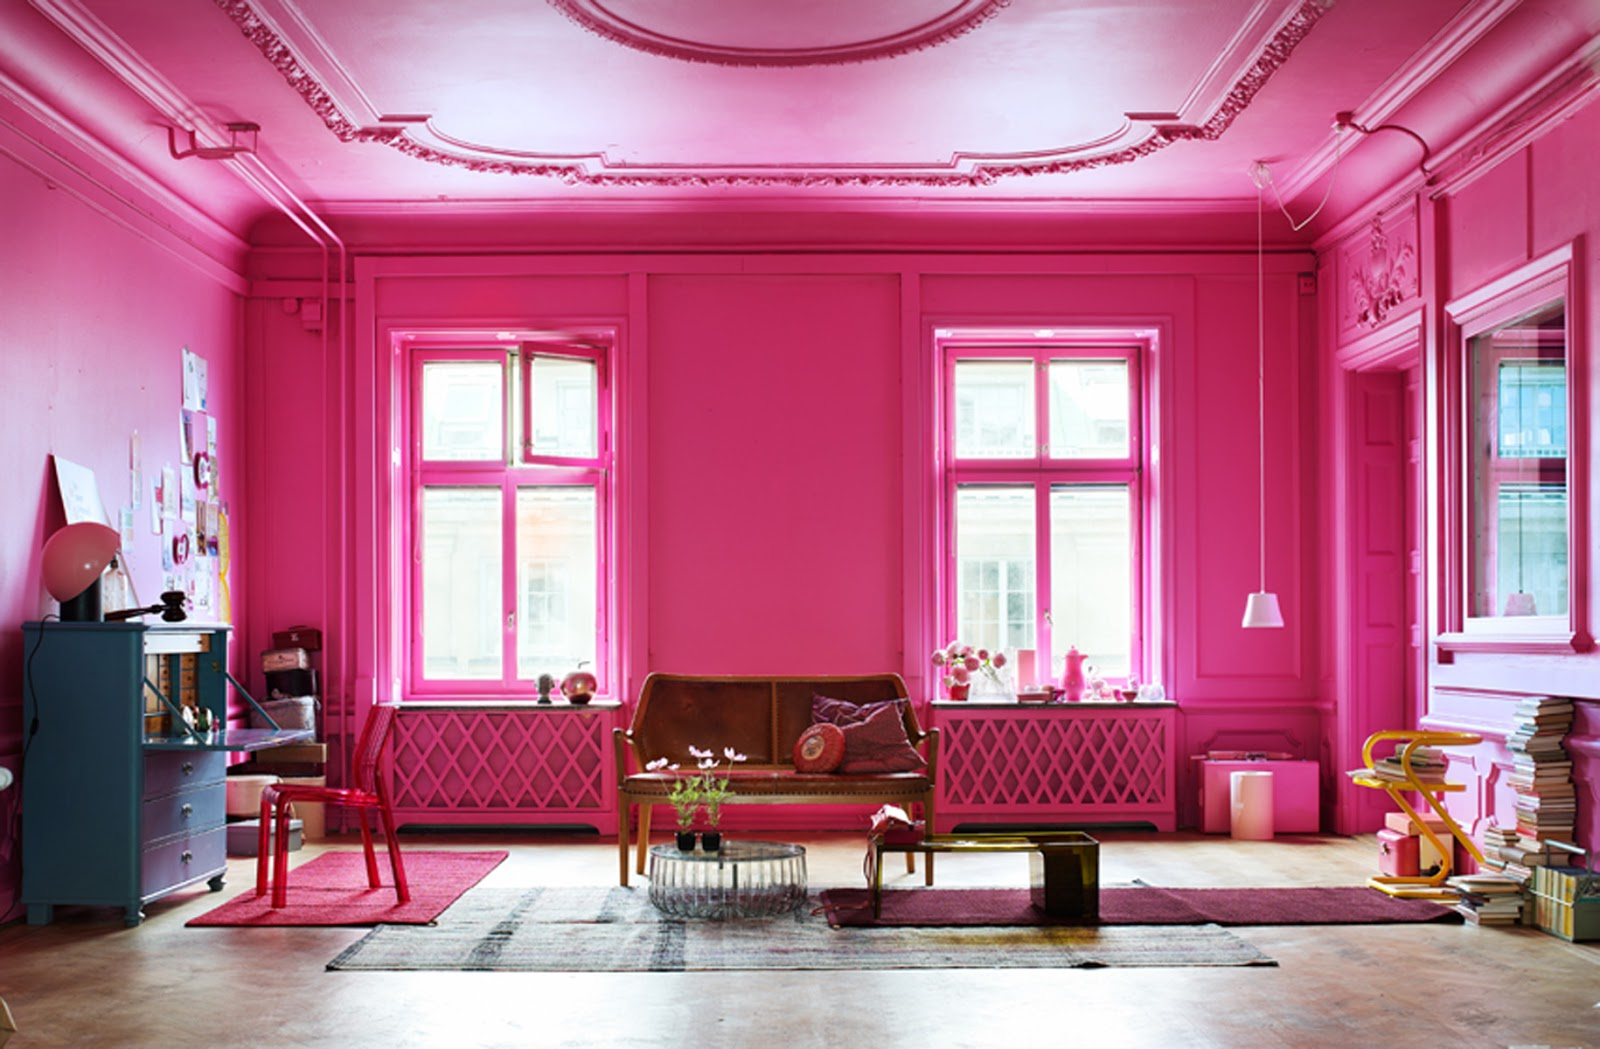 Fearless home decor cococozy - Hot pink room ideas ...